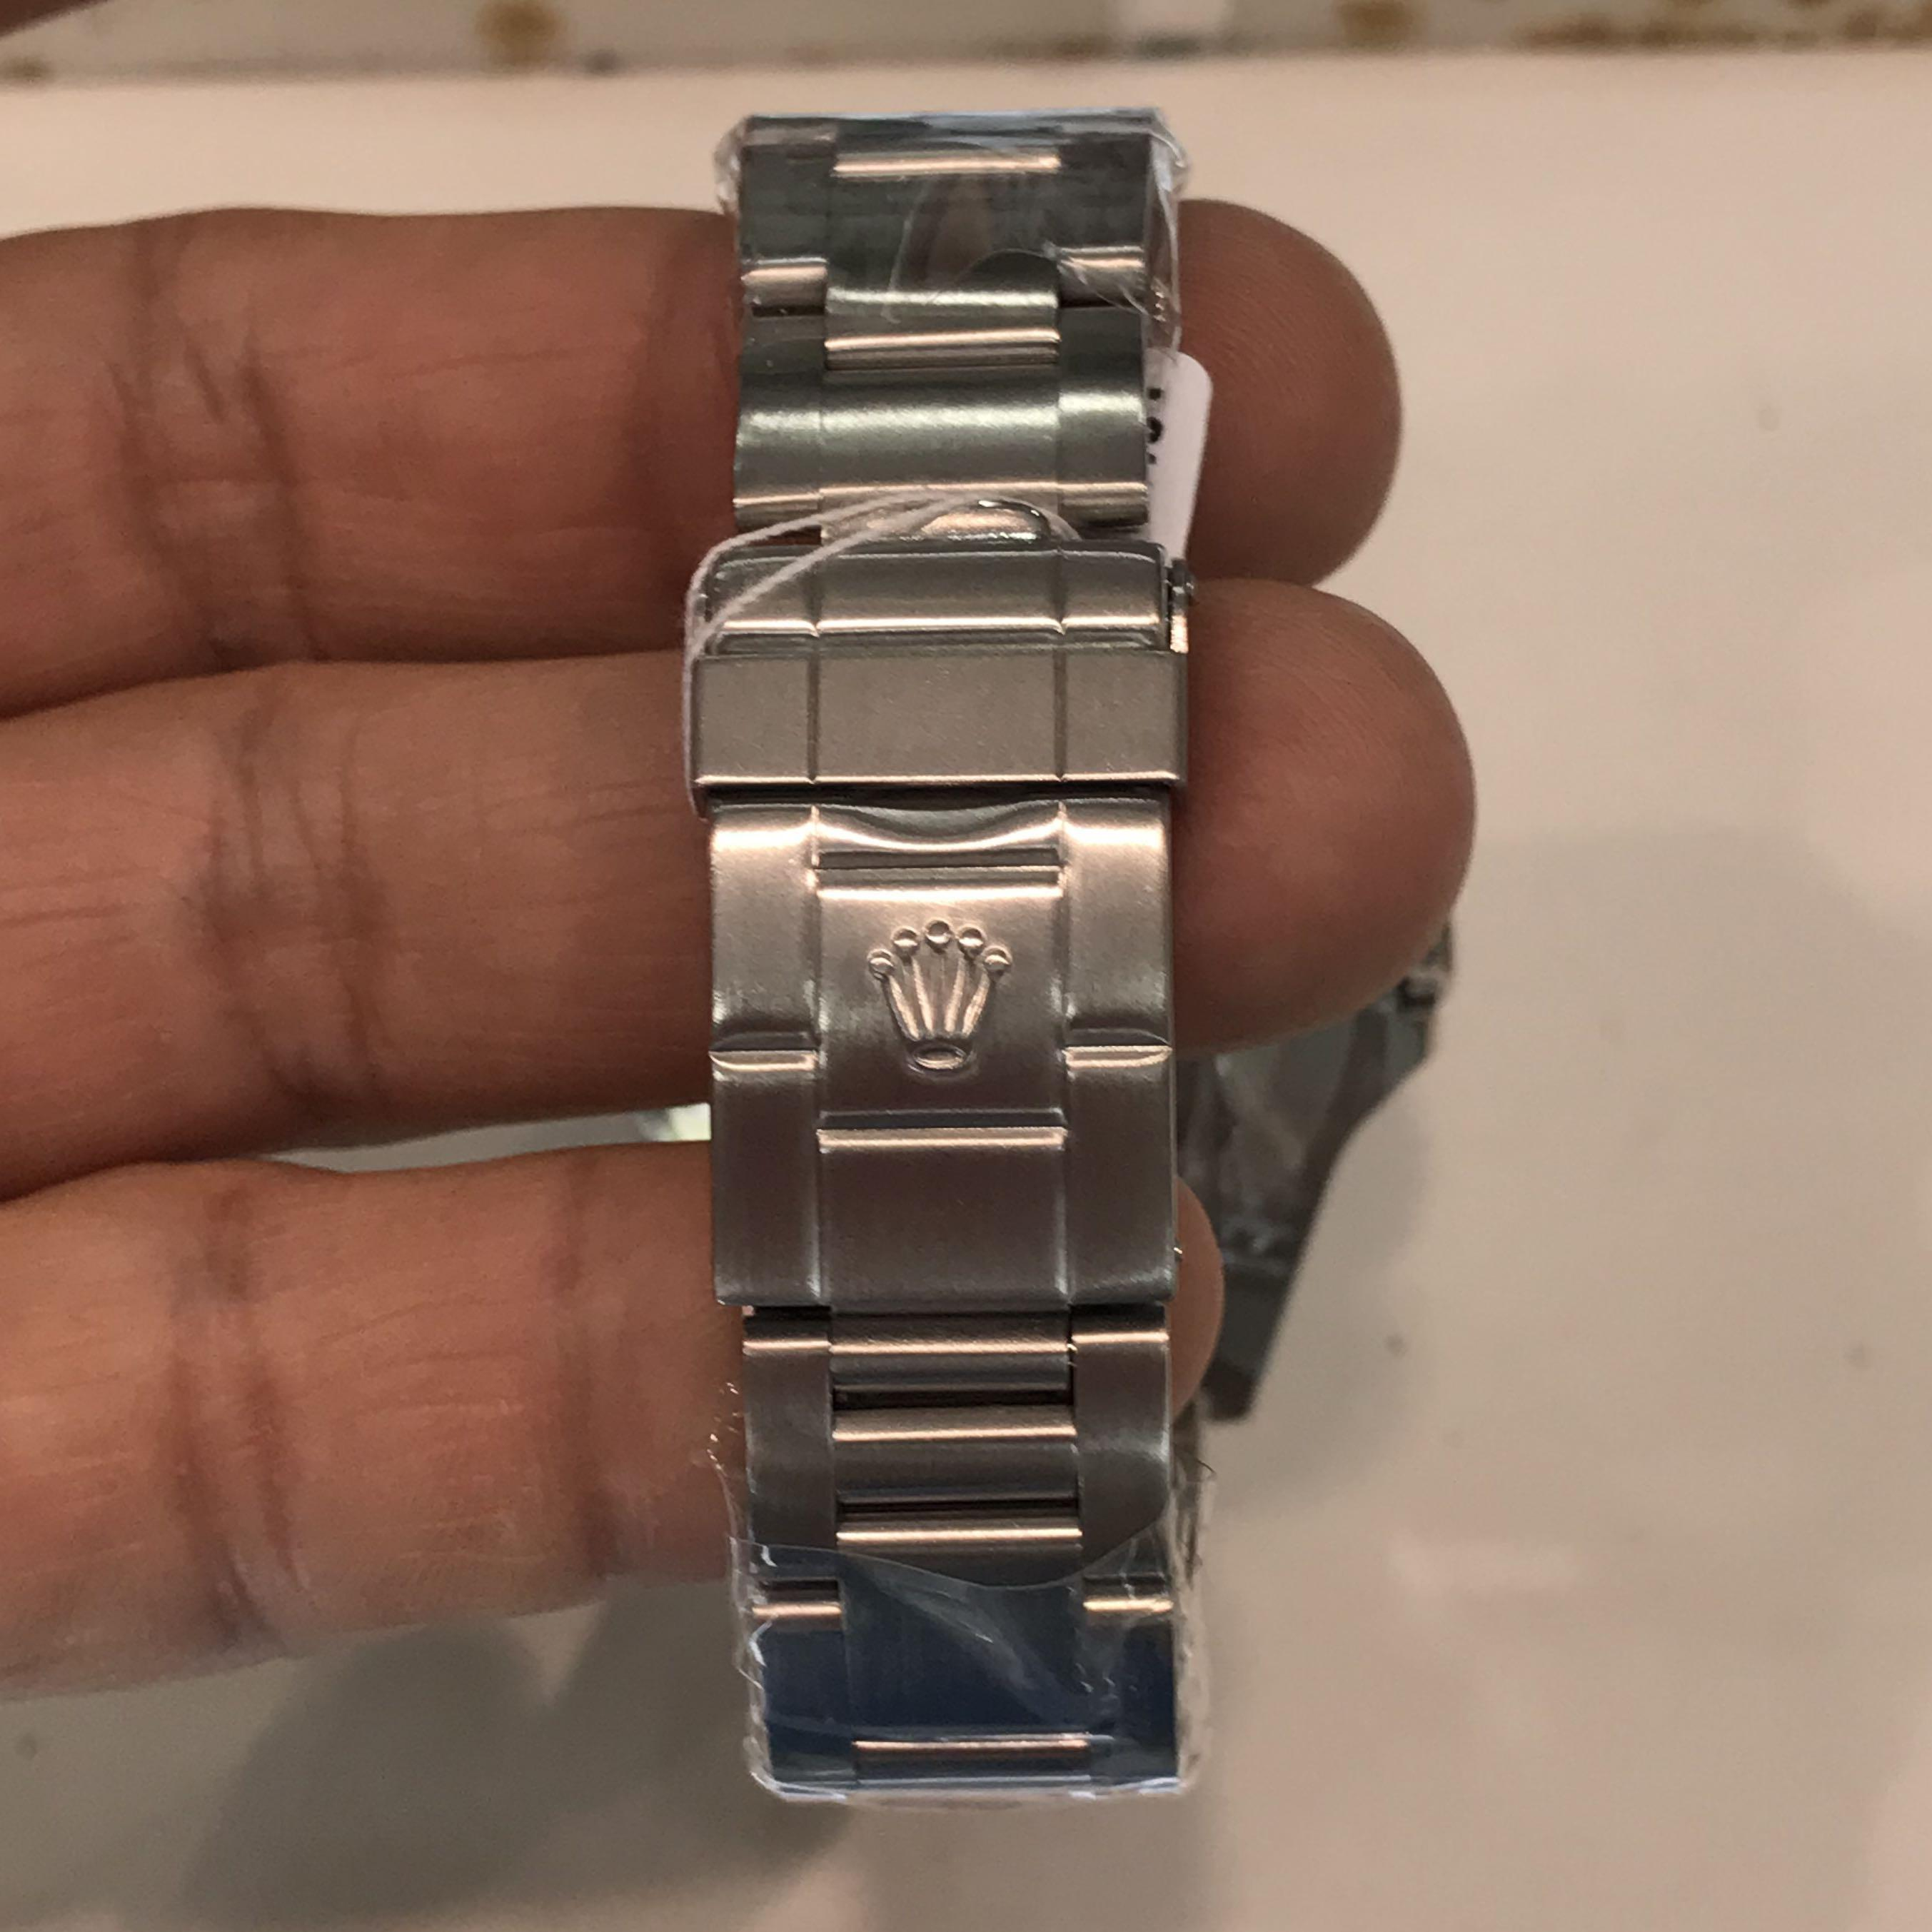 CLEARANCE SALES {Luxury Dress Watch - ROLEX} Authentic ROLEX EXPLORER II OYSTER PERPETUAL DATE SUPERLATIVE CHRONOMETER OFFICIAL CERTIFIED 40mm White Dial Model 16570 Come With Original Bezel & Bracelet